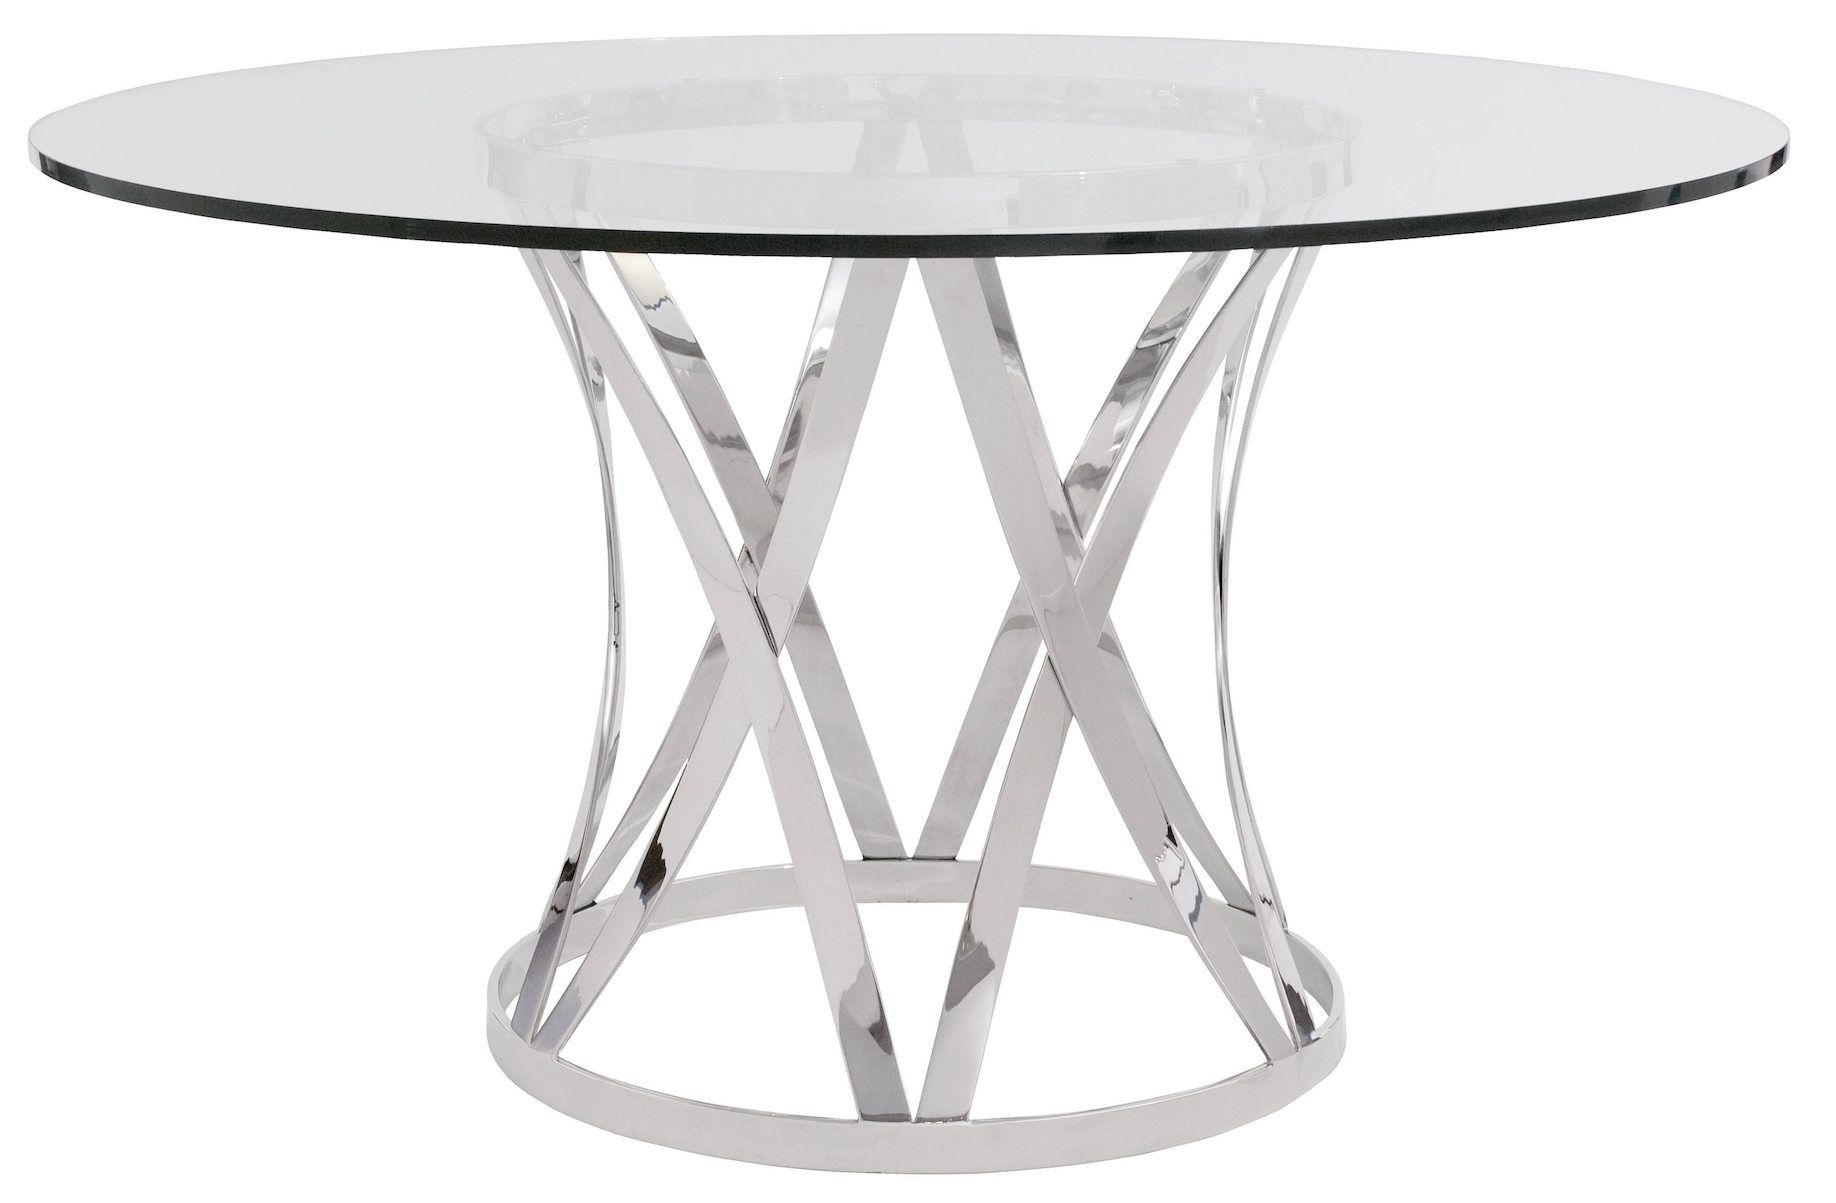 Contemporary Glass Top Round Dining Table With Chrome Polished Unique Base Leg In Mode Glass Round Dining Table Metal Round Dining Table Glass Top Dining Table